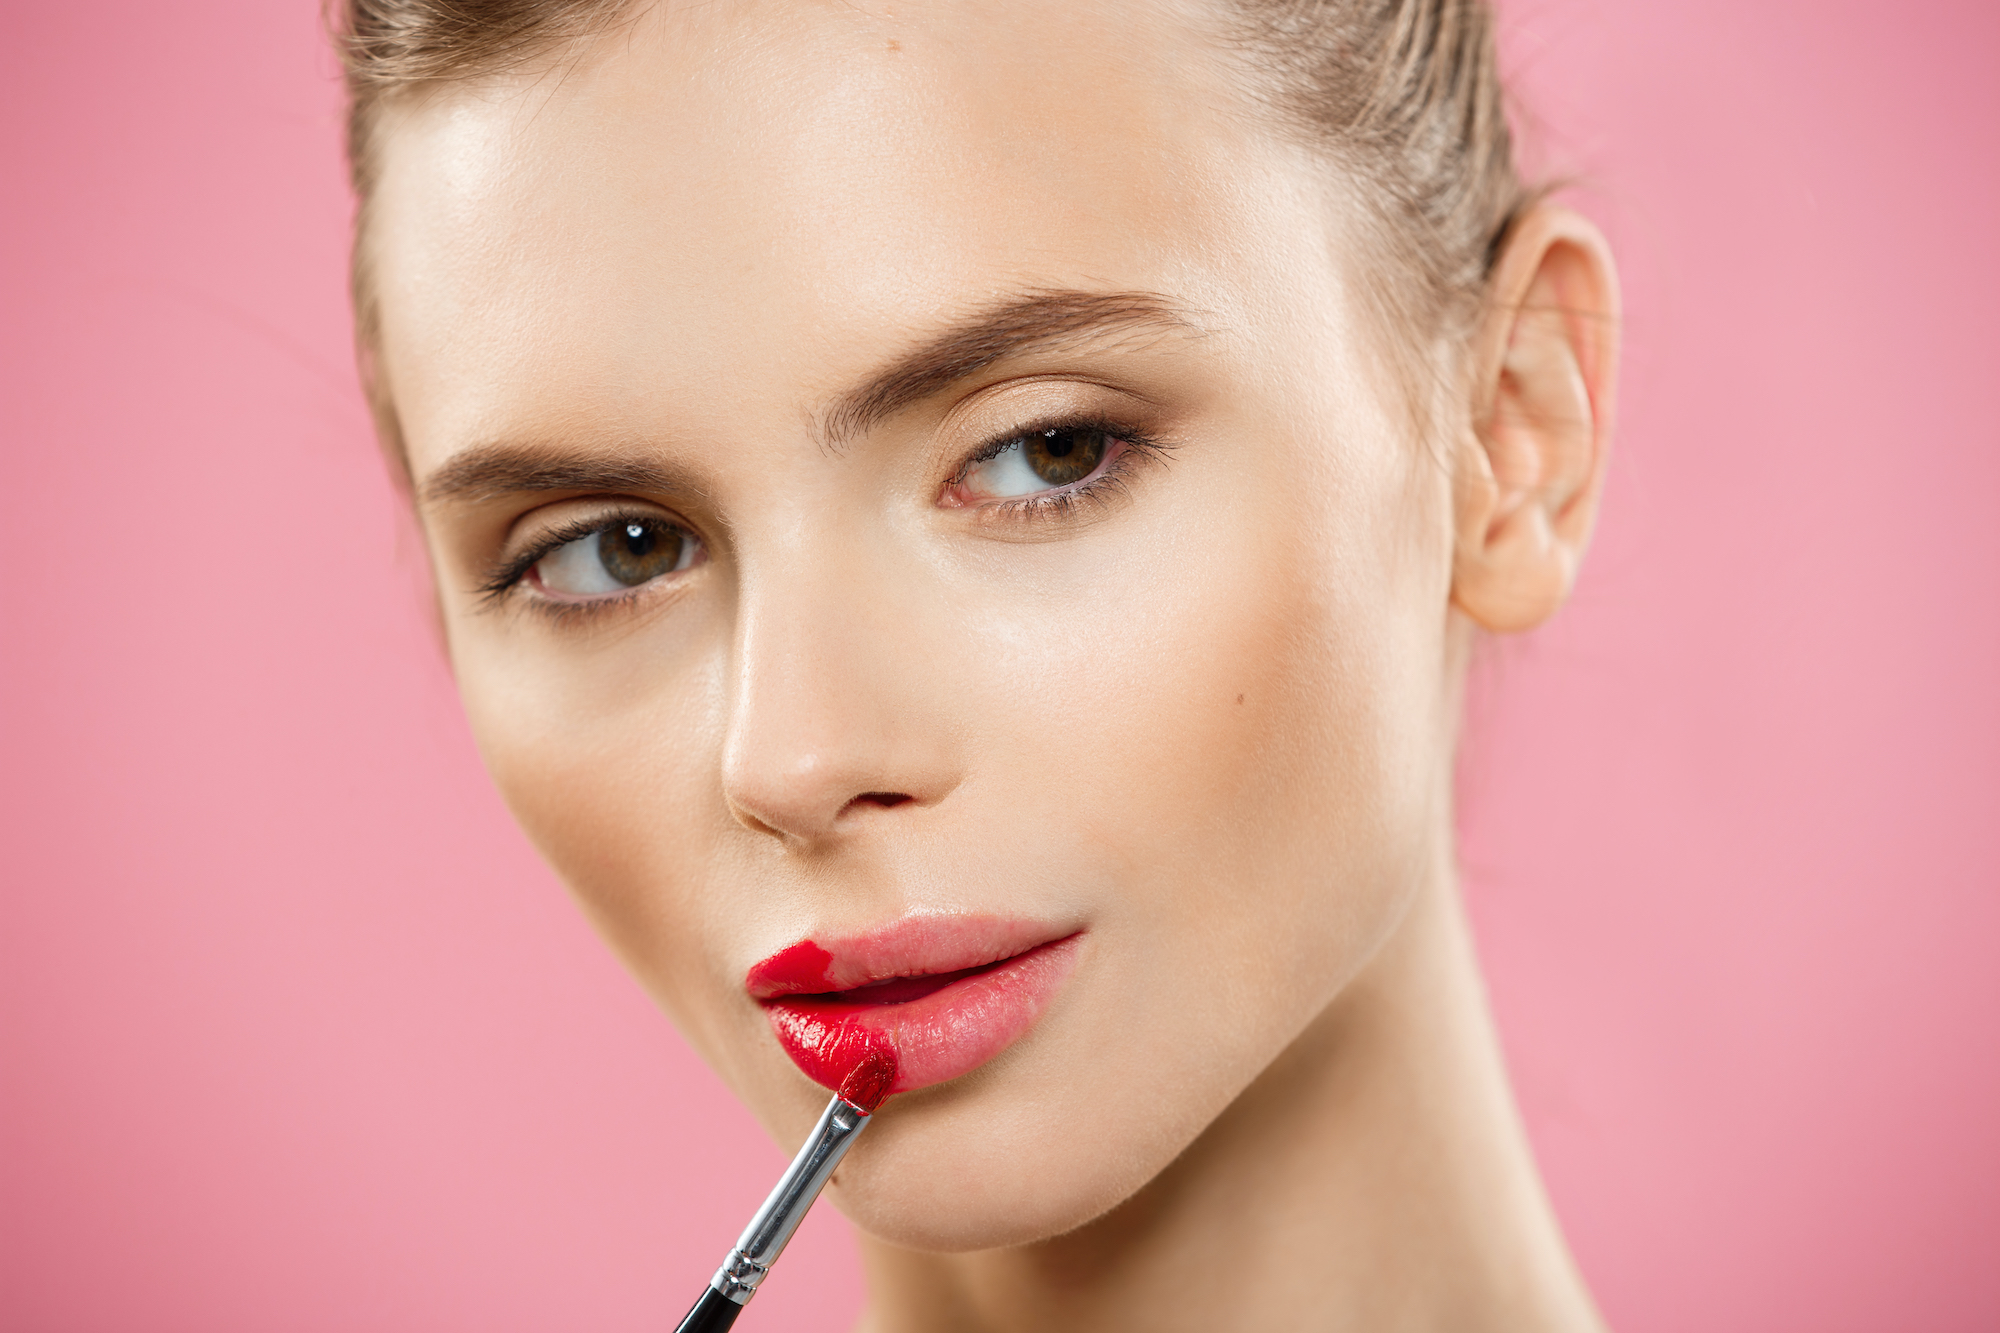 Beauty Concept - Woman applying red lipstick with pink studio background. Beautiful girl makes makeup